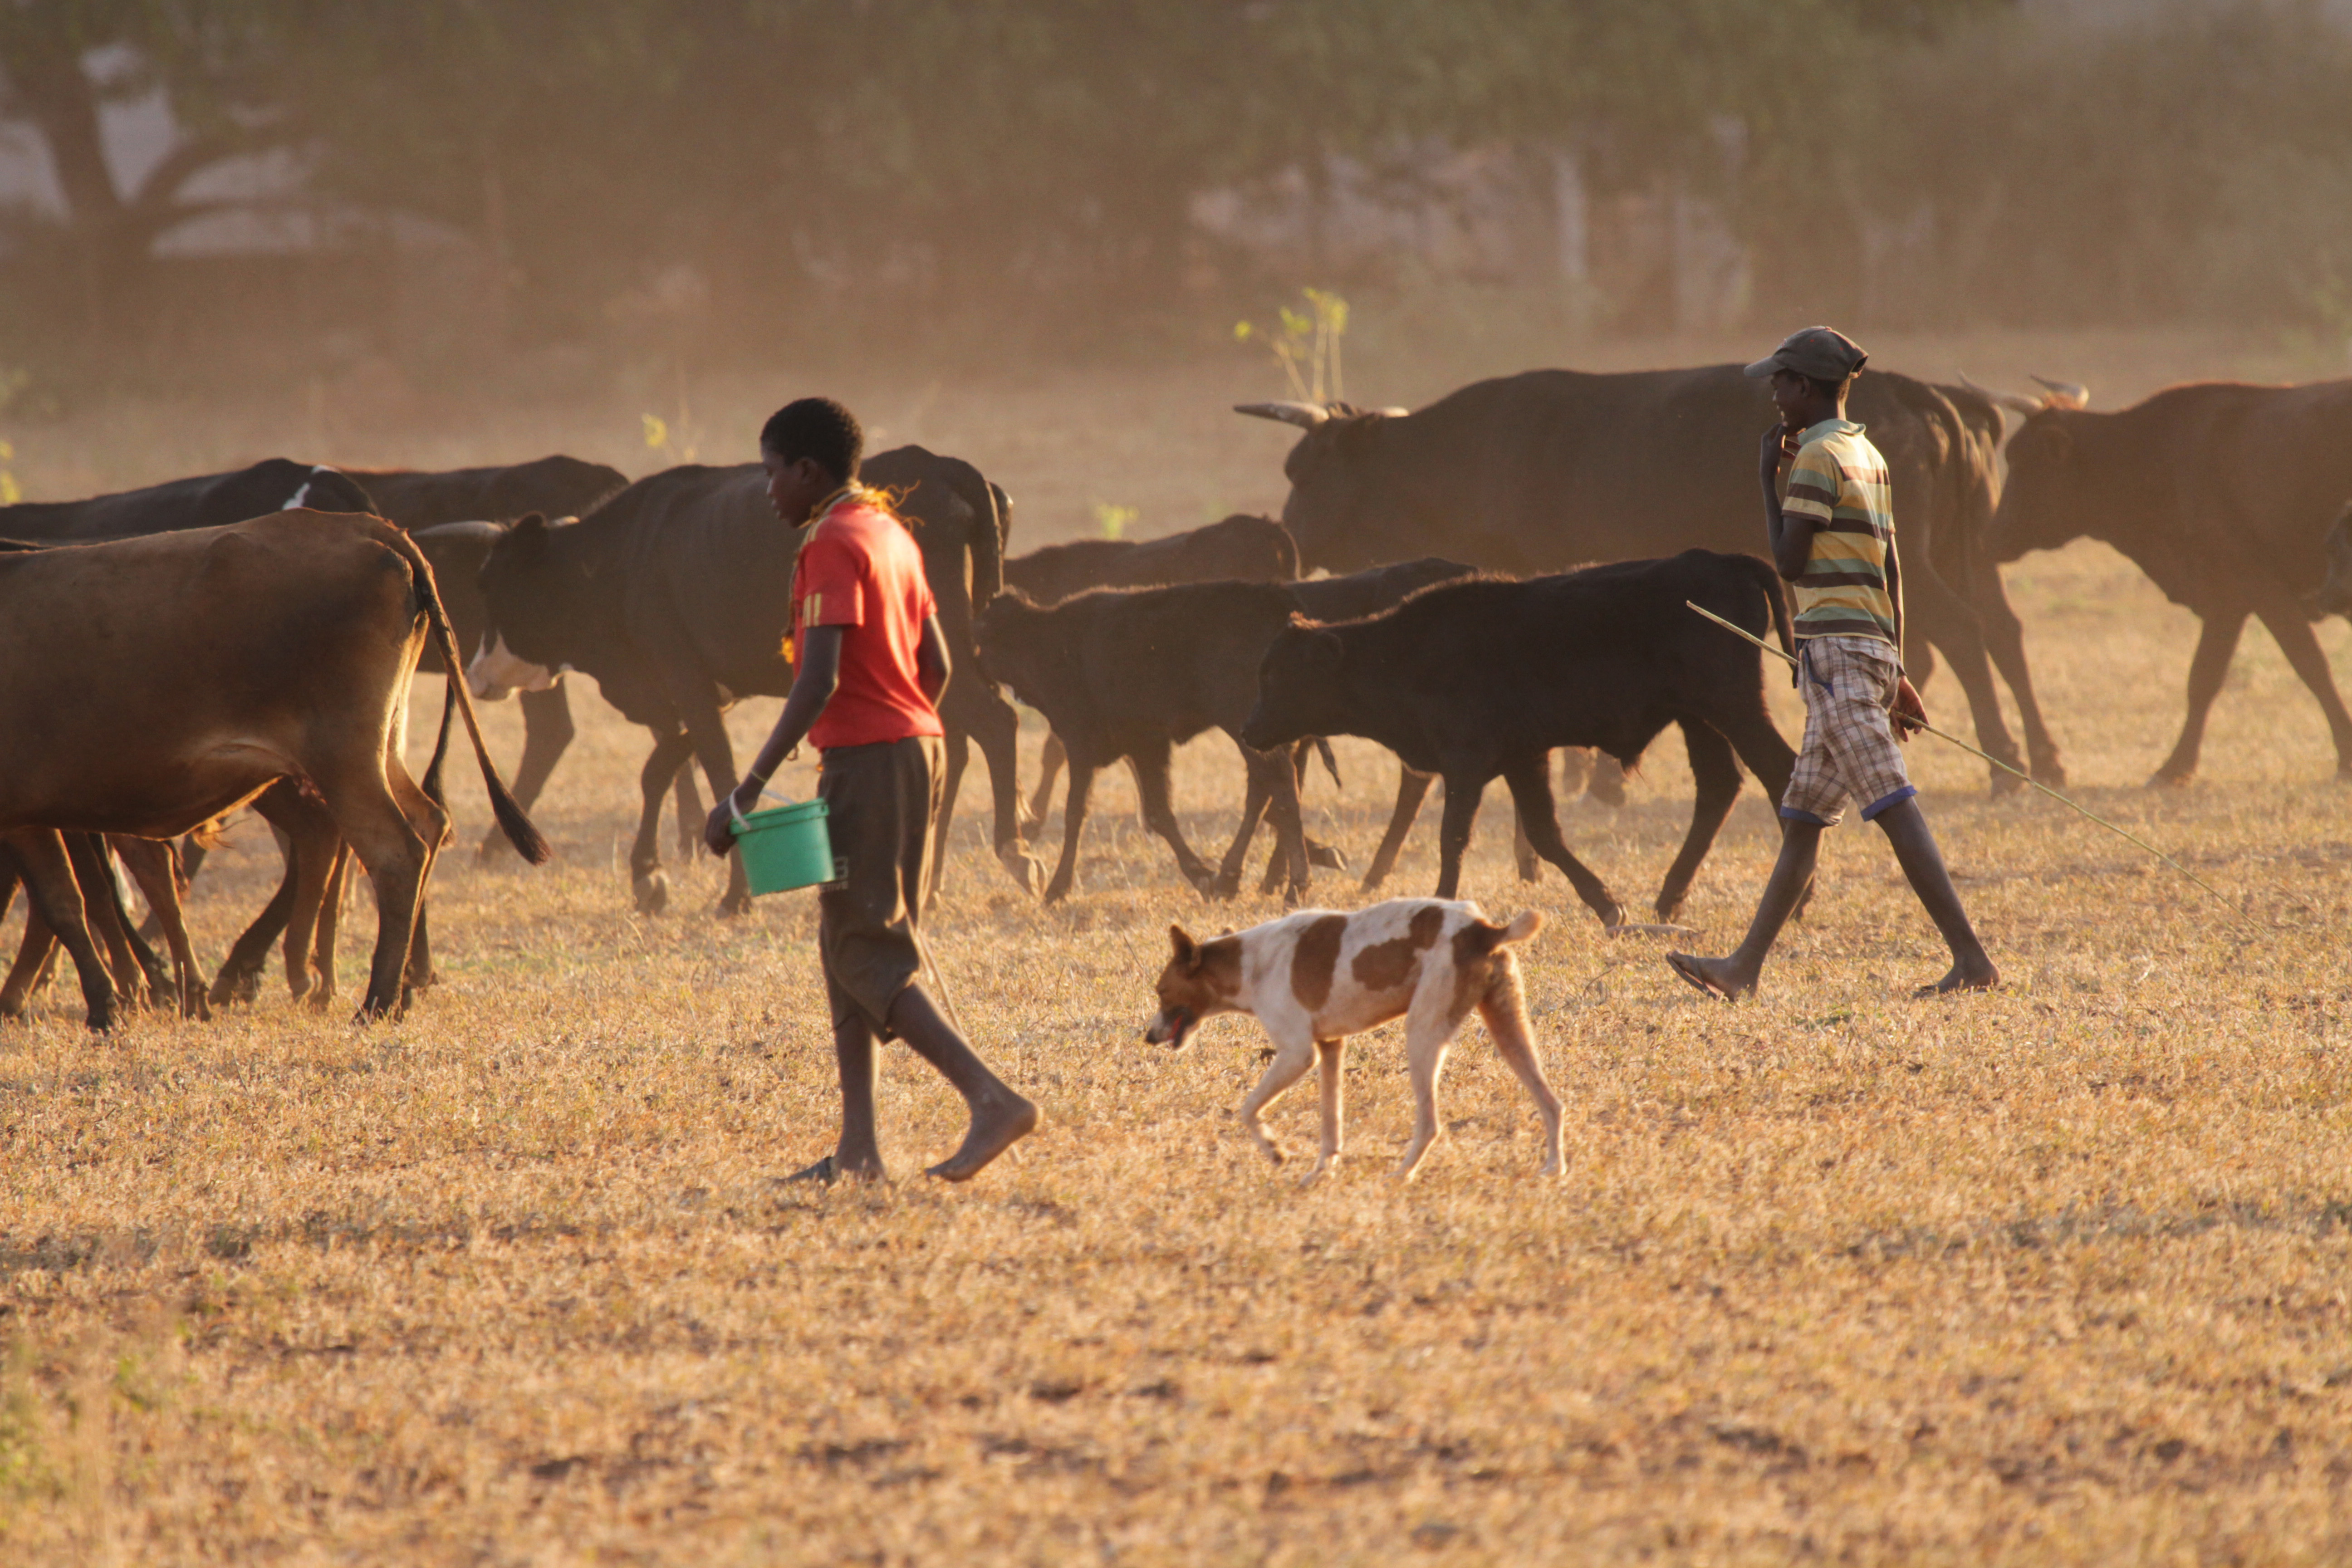 "<div class=""meta image-caption""><div class=""origin-logo origin-image ap""><span>AP</span></div><span class=""caption-text"">Two boys and their dog herd cattle in Chipinge, Zimbabwe. (AP)</span></div>"